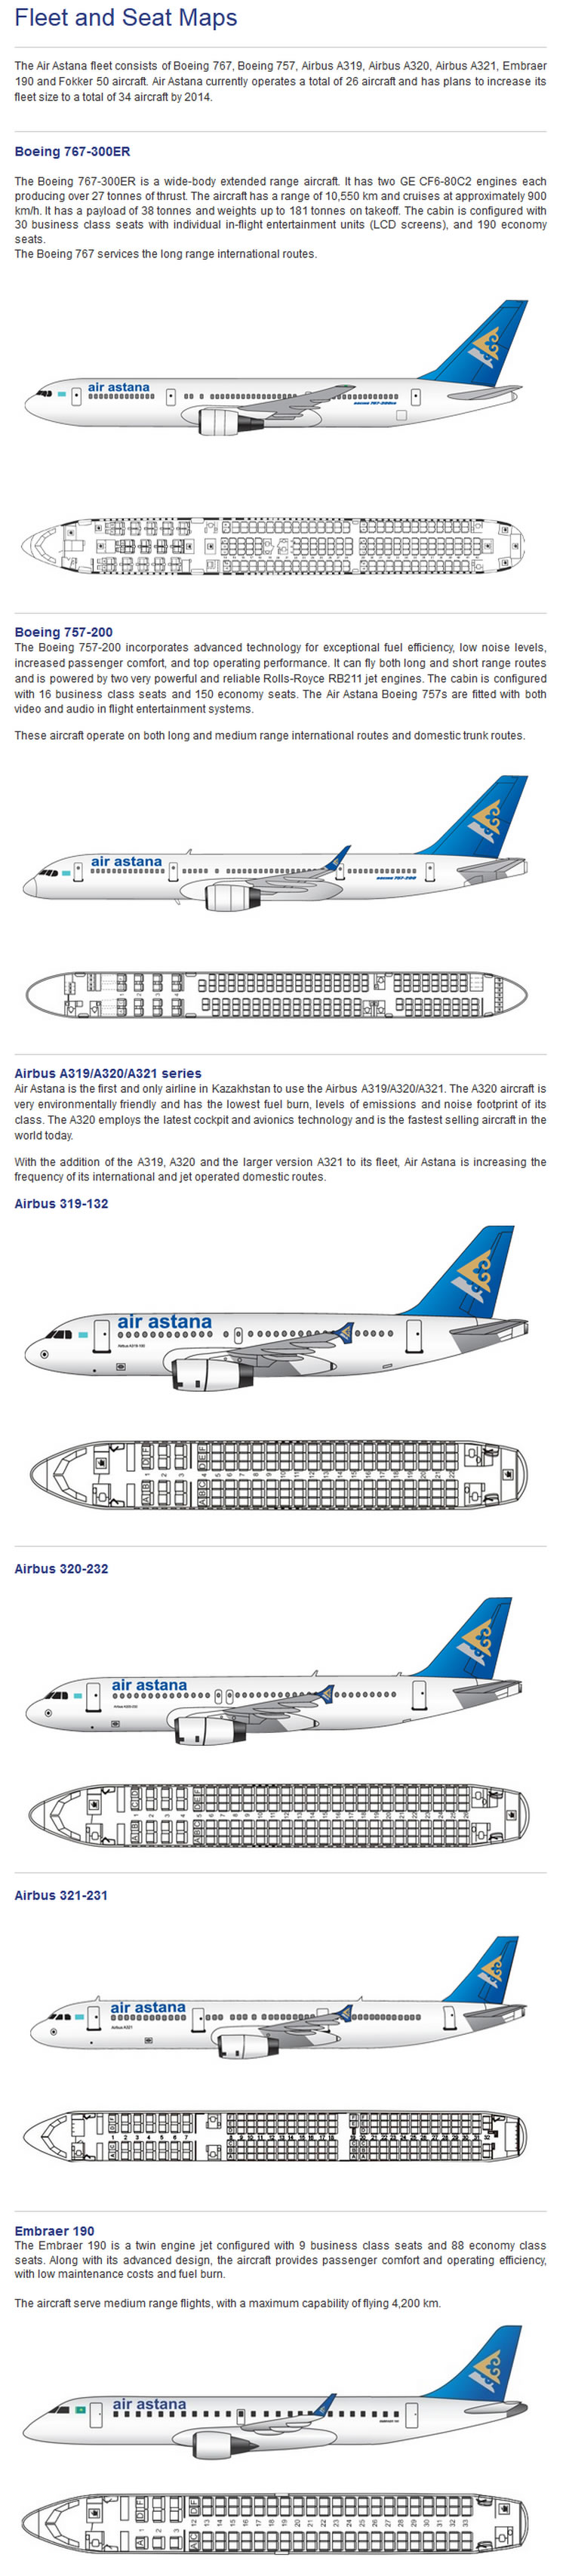 AIR ASTANA AIRLINES FLEET